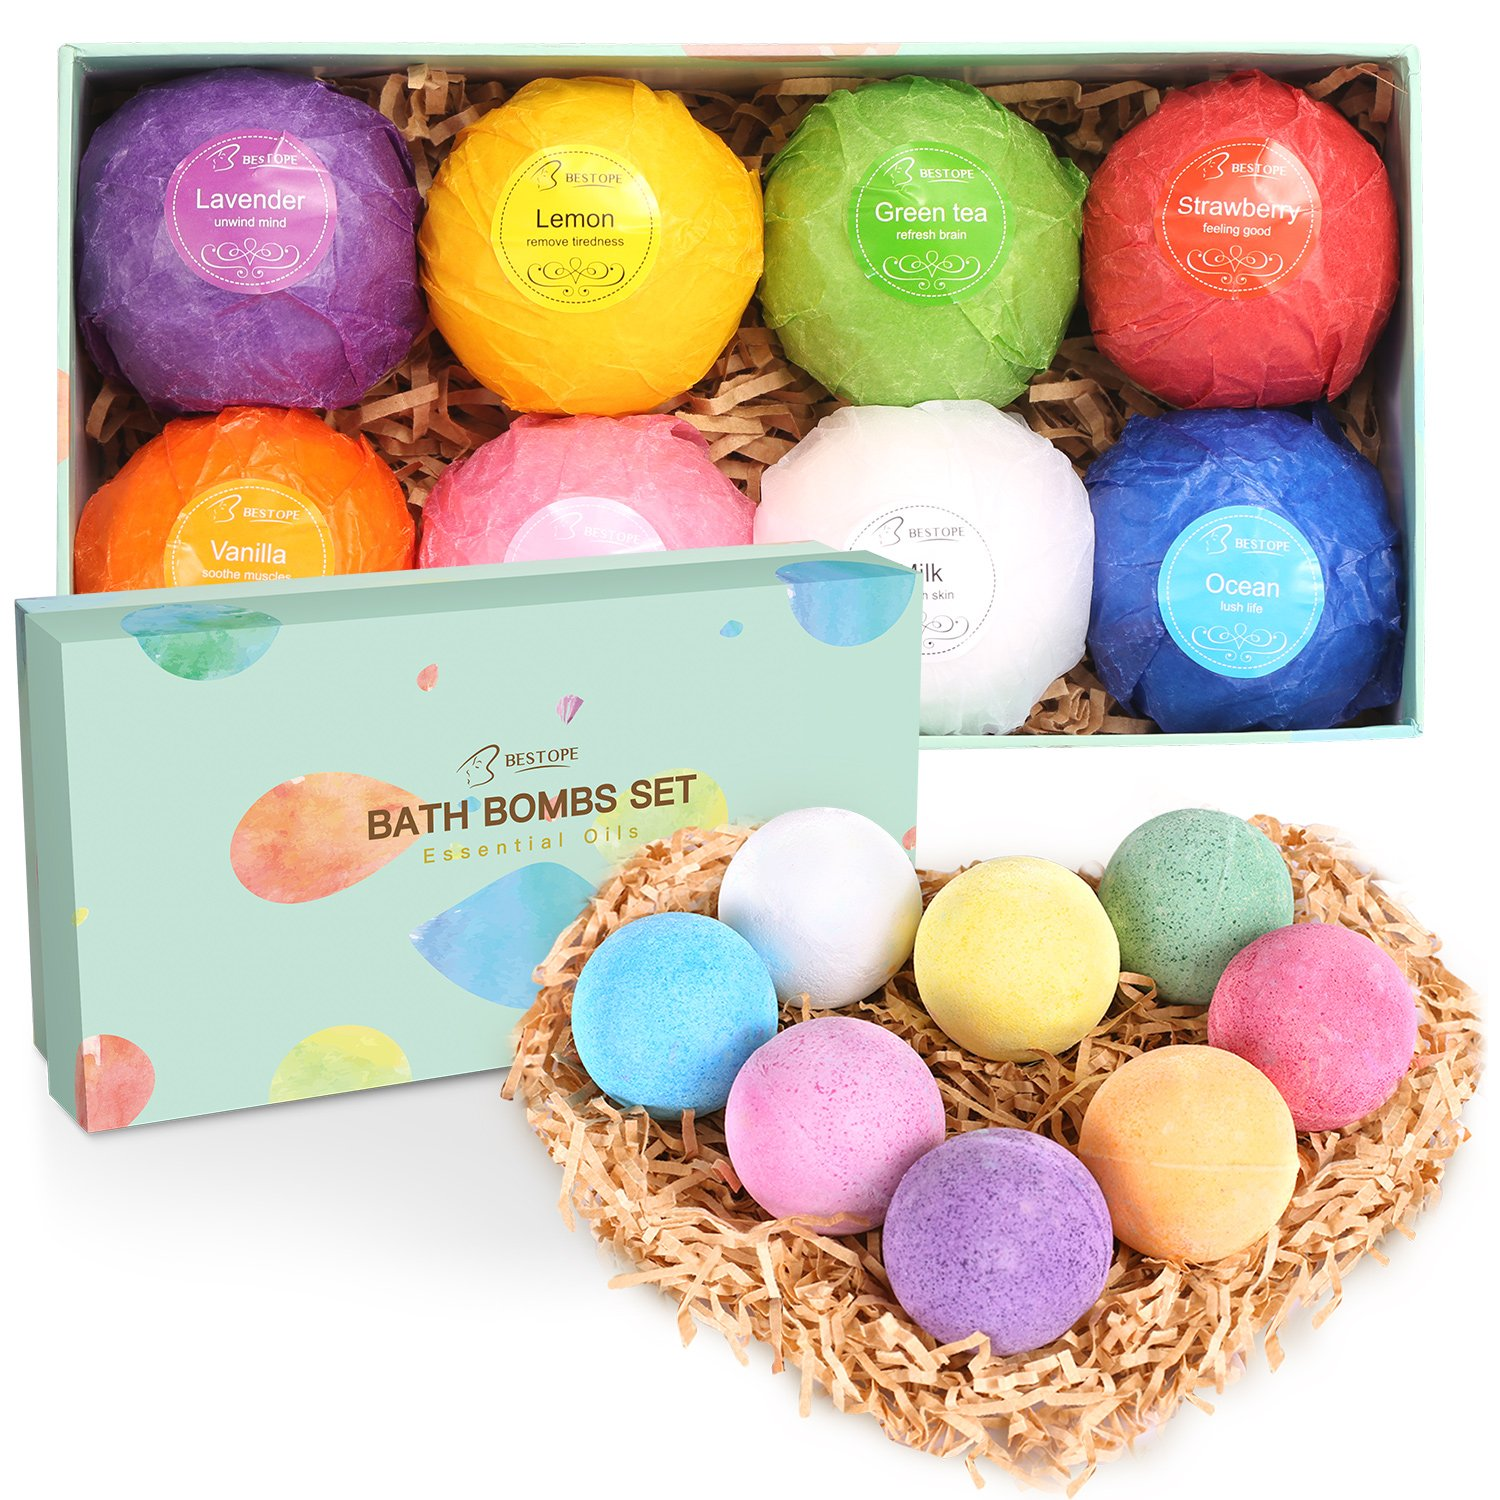 BESTOPE Bath Bombs Gift Set, 8 x 3.5 oz Vegan Natural Essential Oil & Lush Fizzy and Spa Bubble Bath Moisturizes Dry Skin, Luxury Gift for Women, Mom, Teen Girl, Valentines, Birthday (8PCS) BESTOPE CA